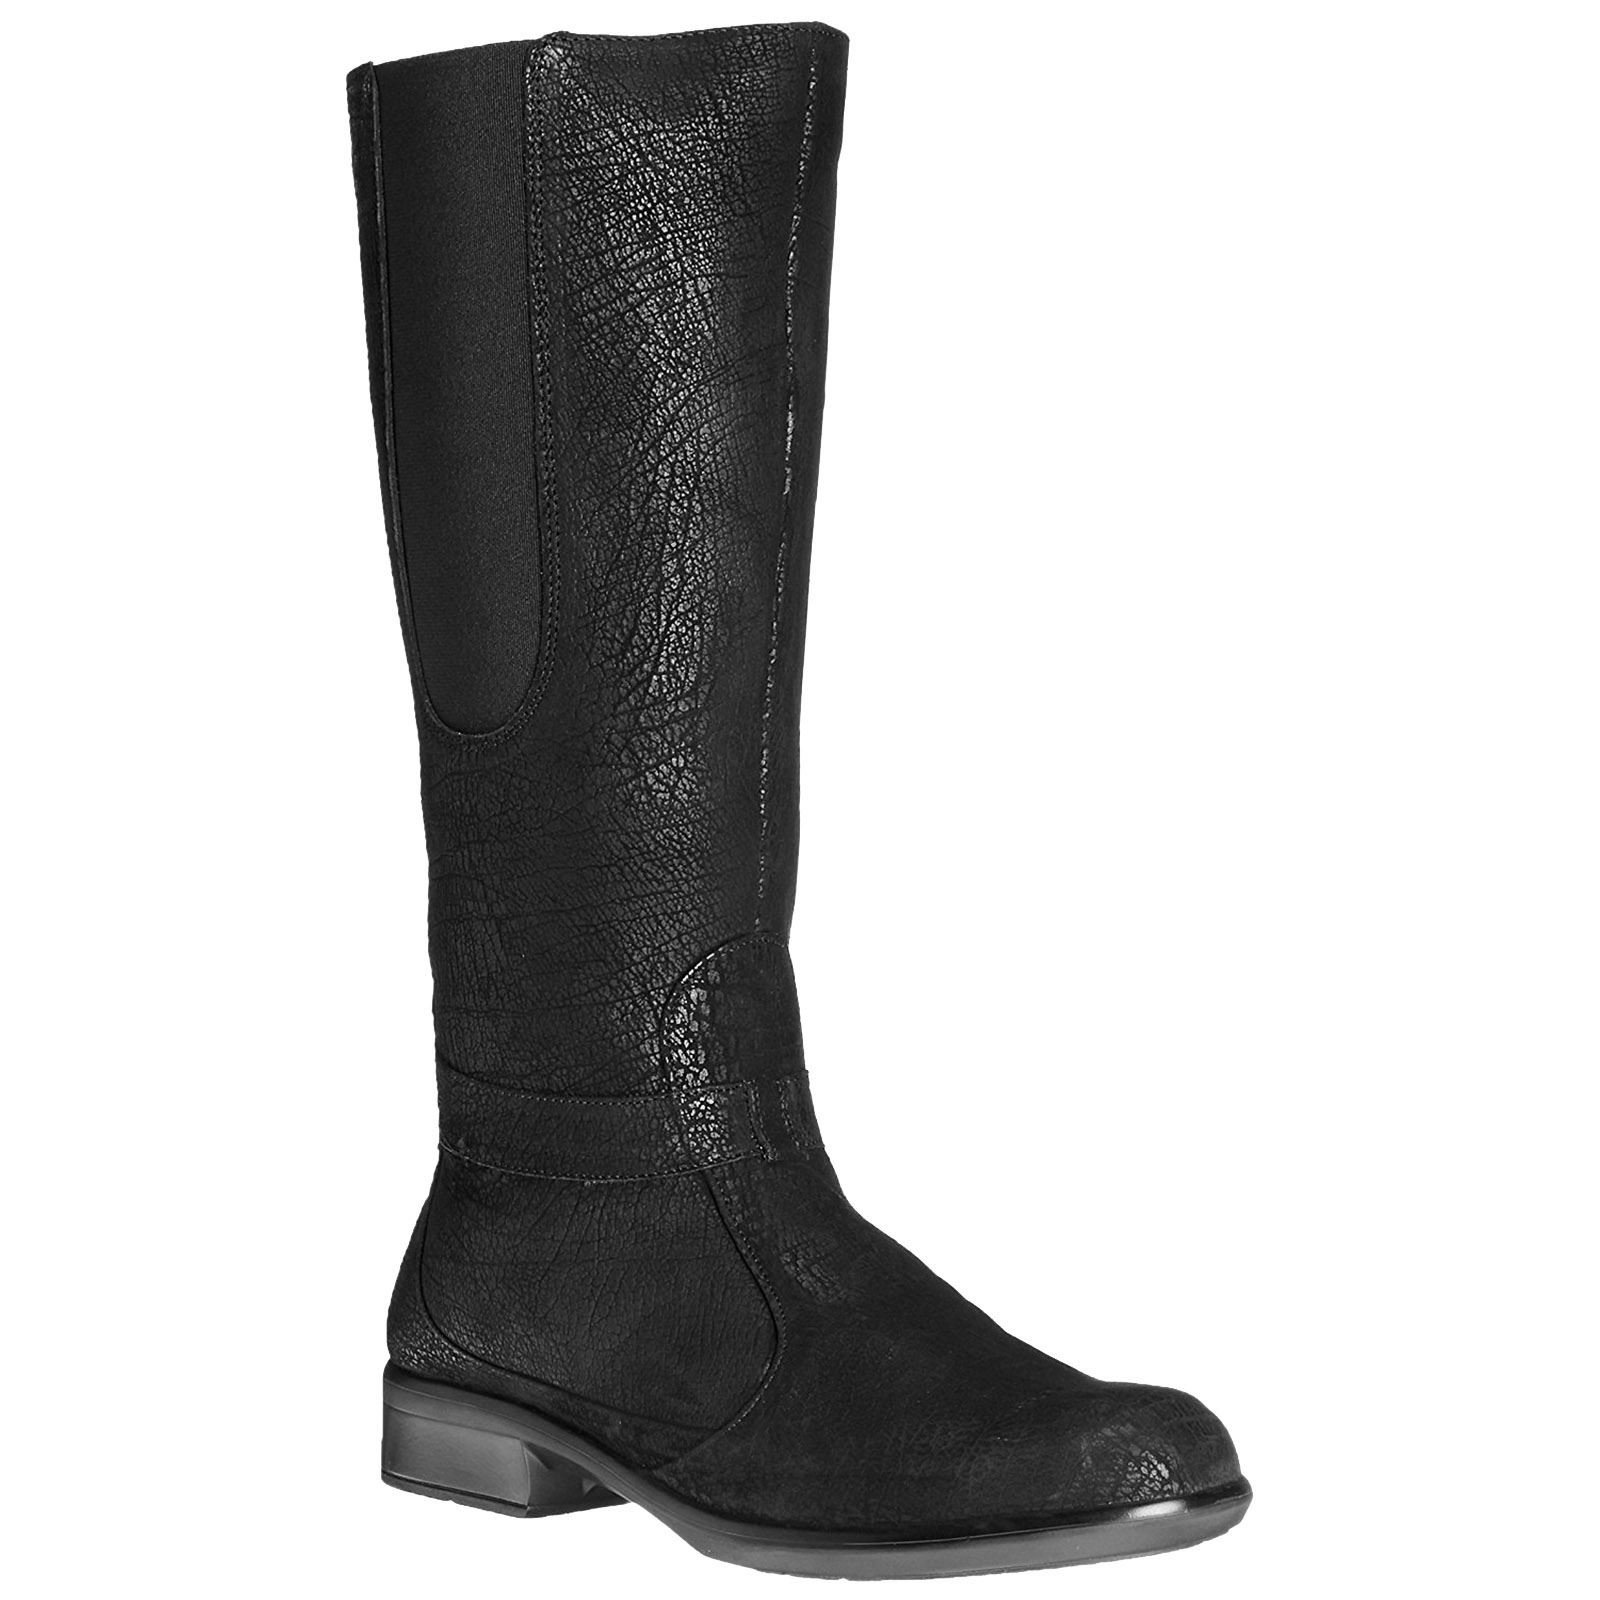 Naot Women's Viento Boot, Black Crackle Leather, 38 EU/6.5-7 M US